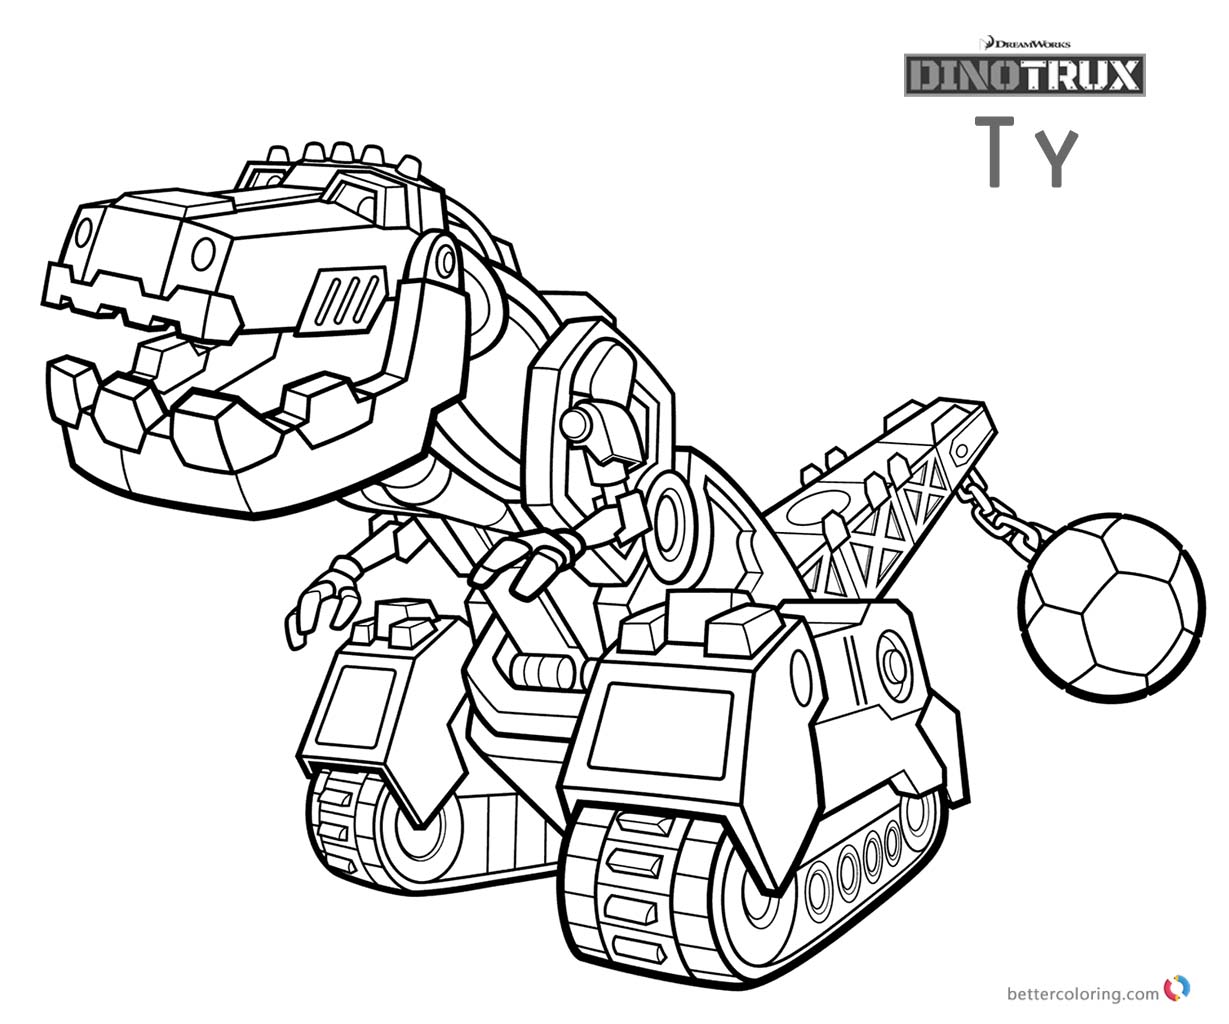 Dinotrux Ty coloring pages printable